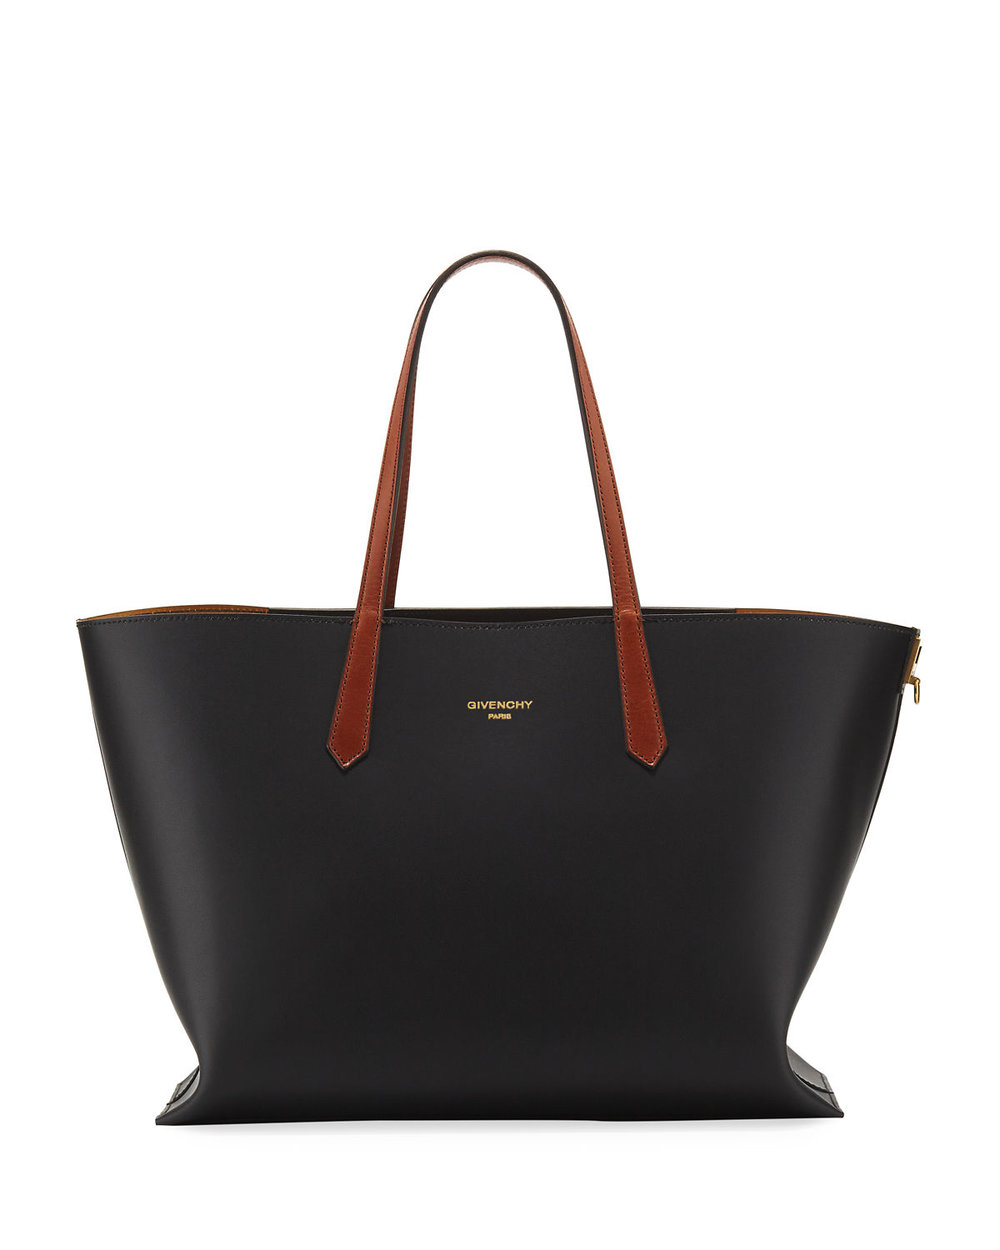 Givenchy's Leather Shopper —  $1250 on Neiman Marcus